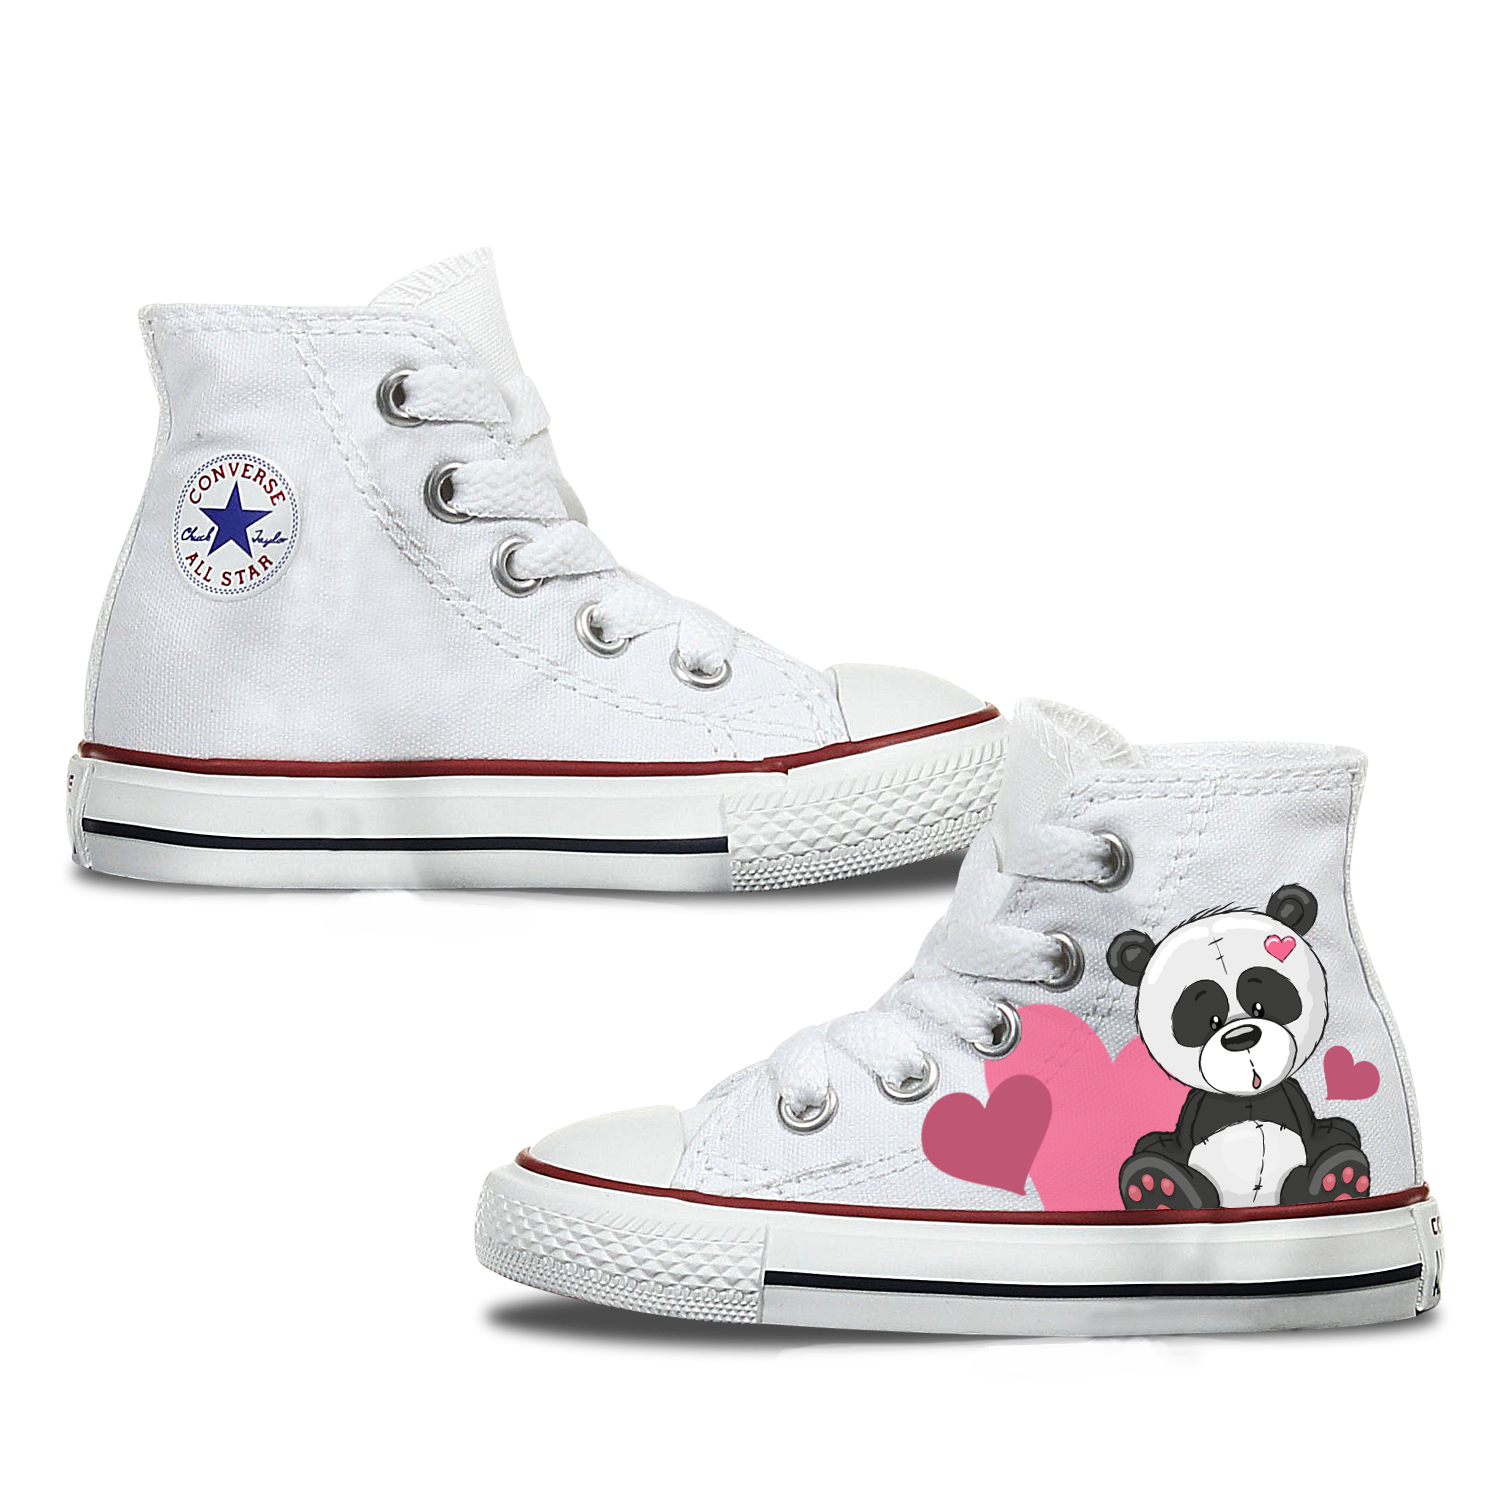 Panda Kids Converse Shoes